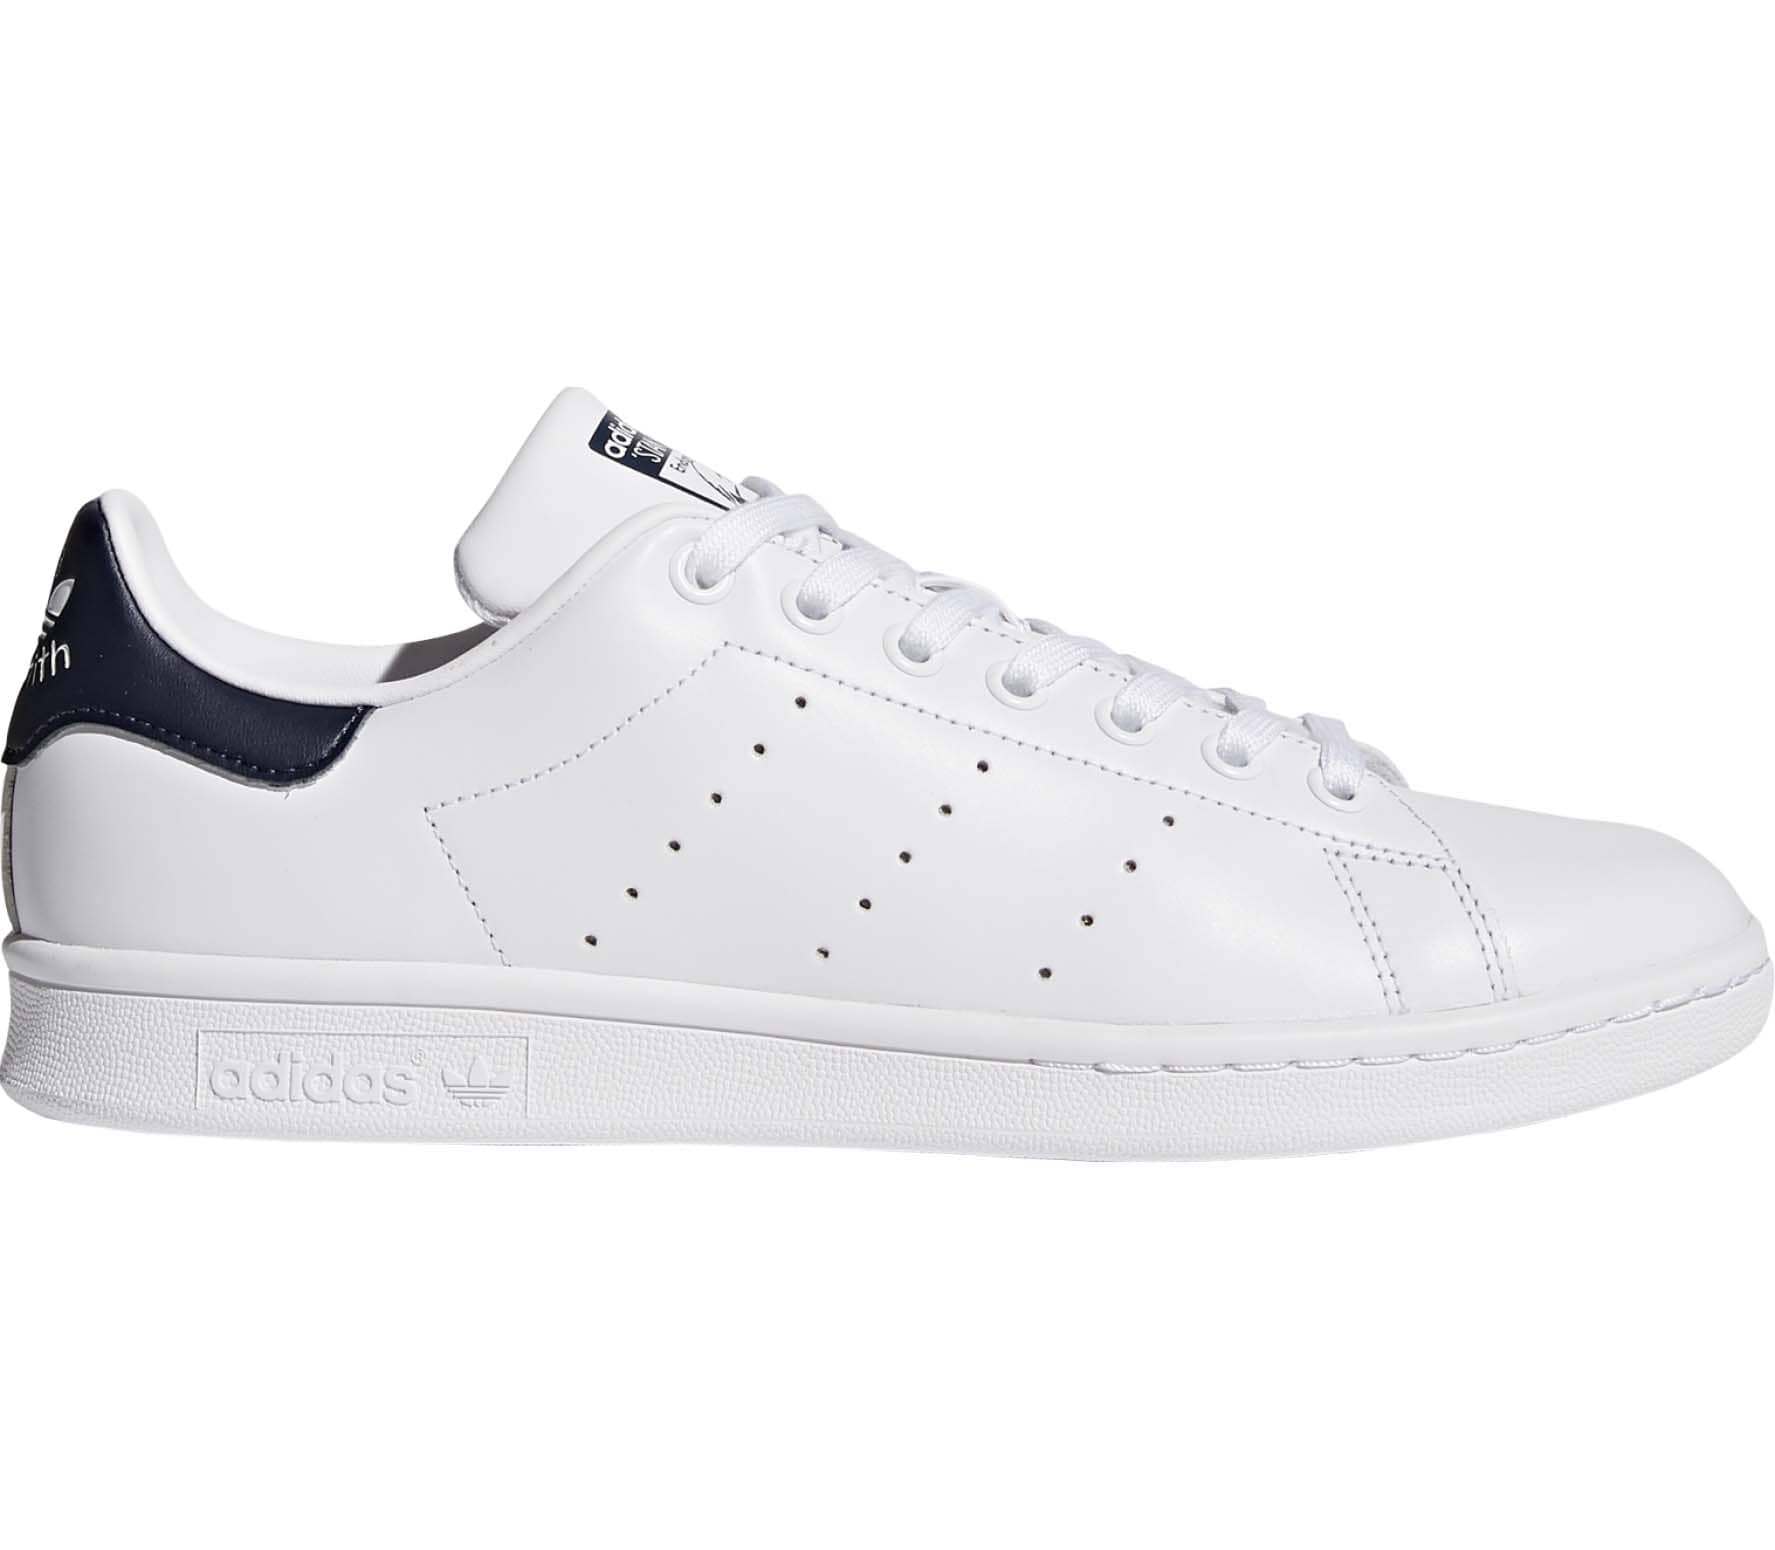 753d0d7ac34fb3 Adidas Originals Stan Smith sneaker (white) online kaufen